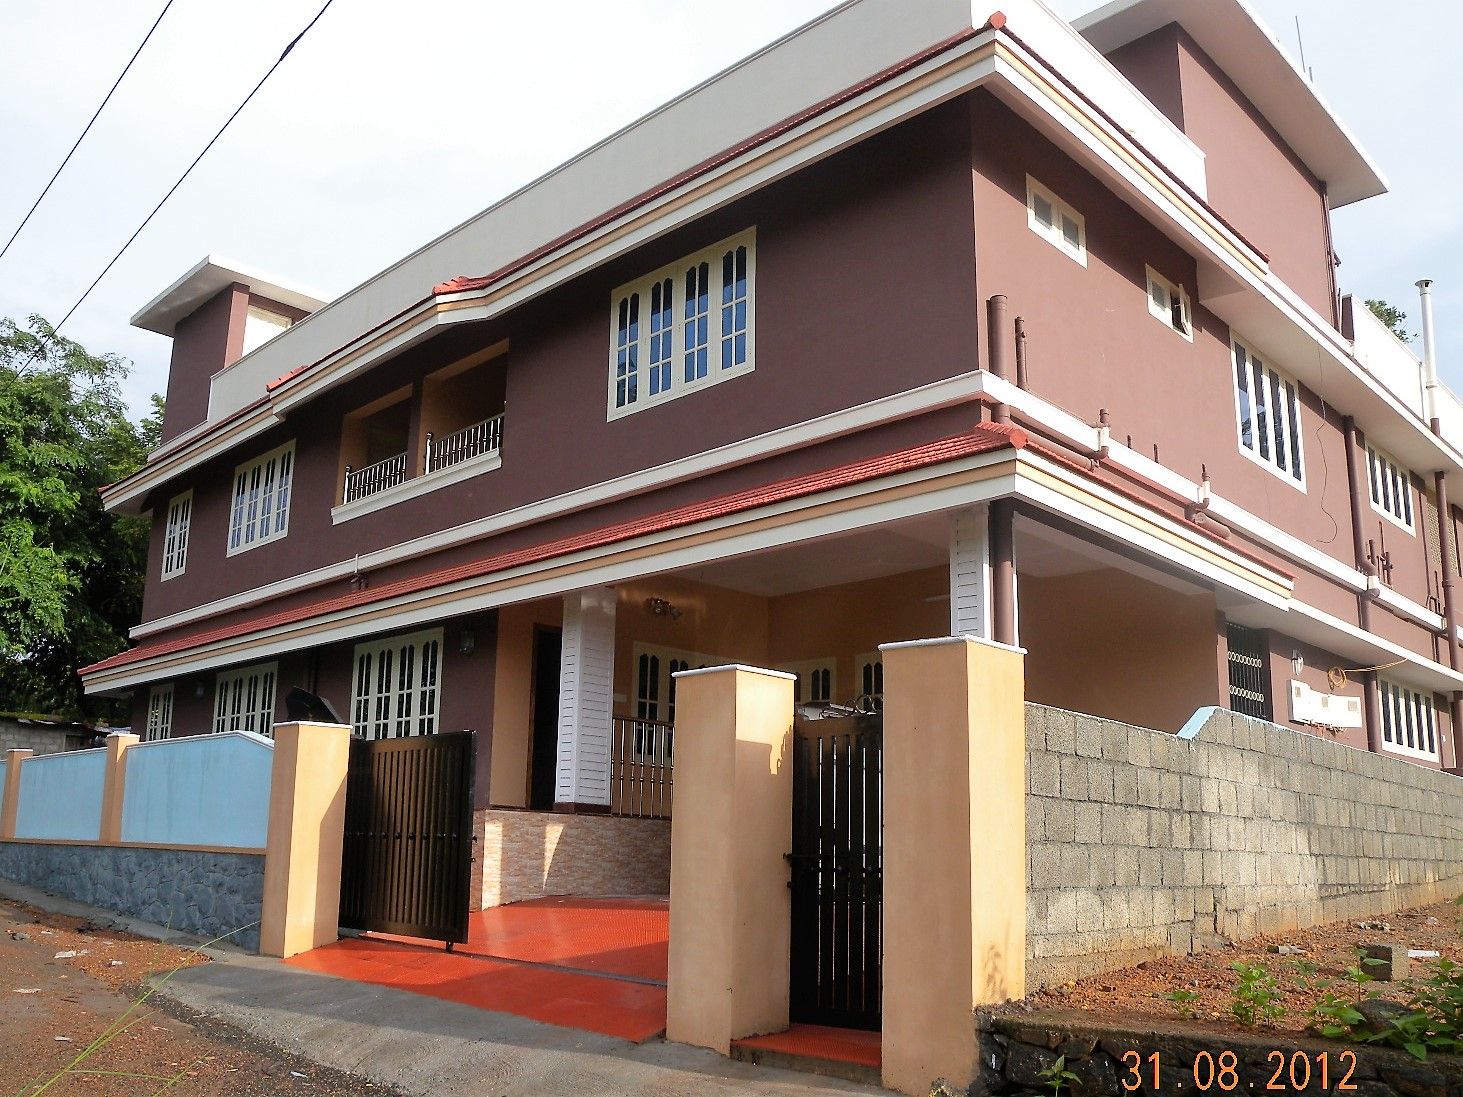 4 Bedroom Apartment Townhouse For Sale at Thiruvalla